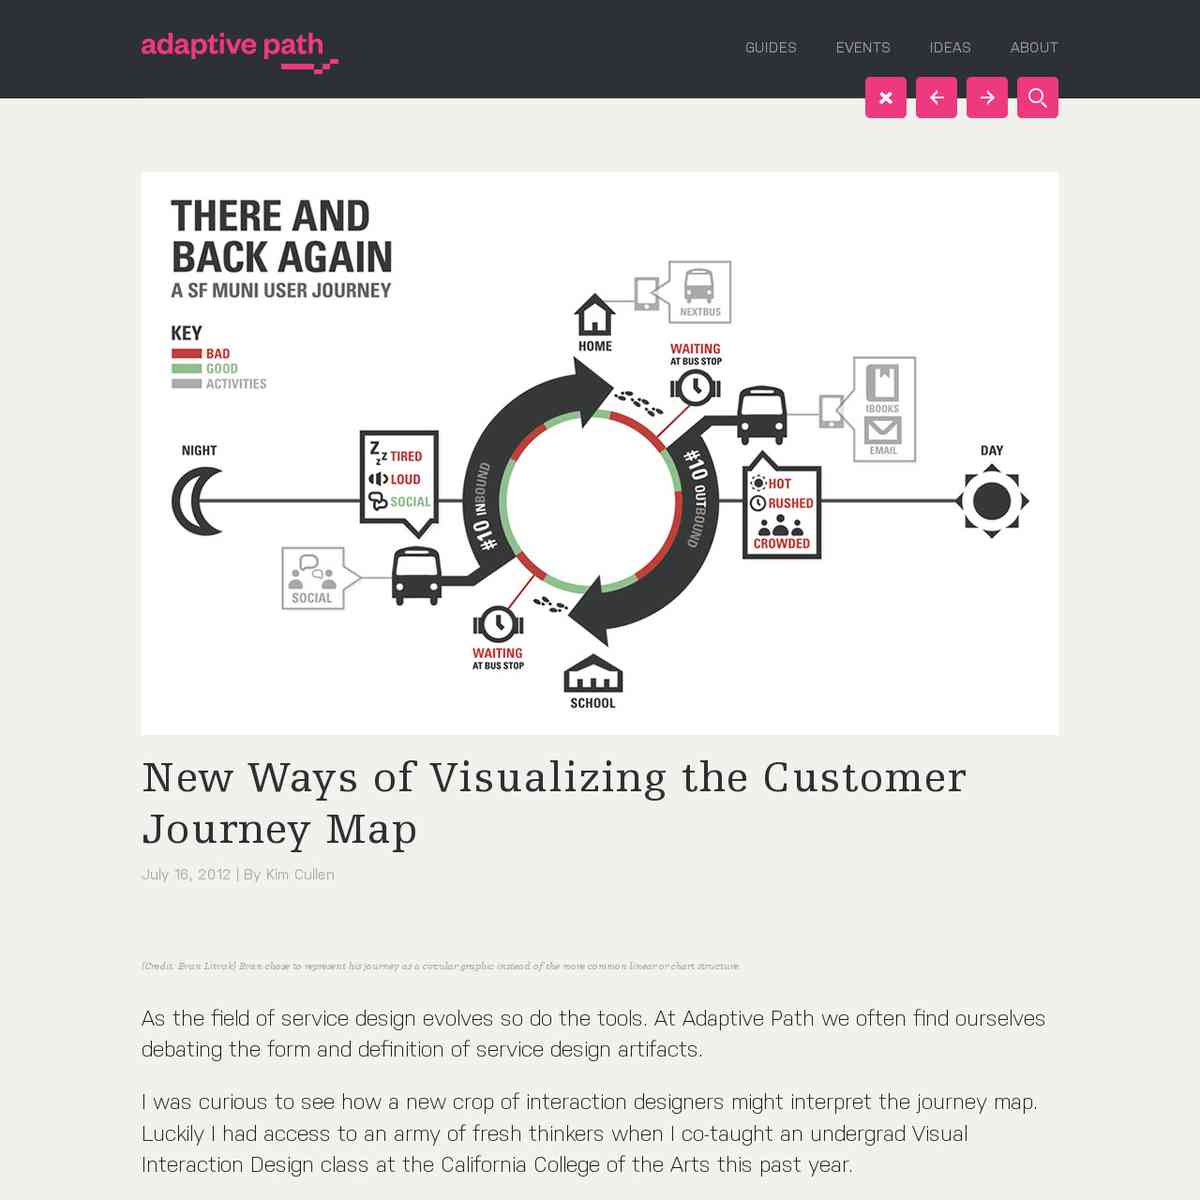 adaptivepath.com/ideas/new-ways-of-visualizing-the-customer-journey-map